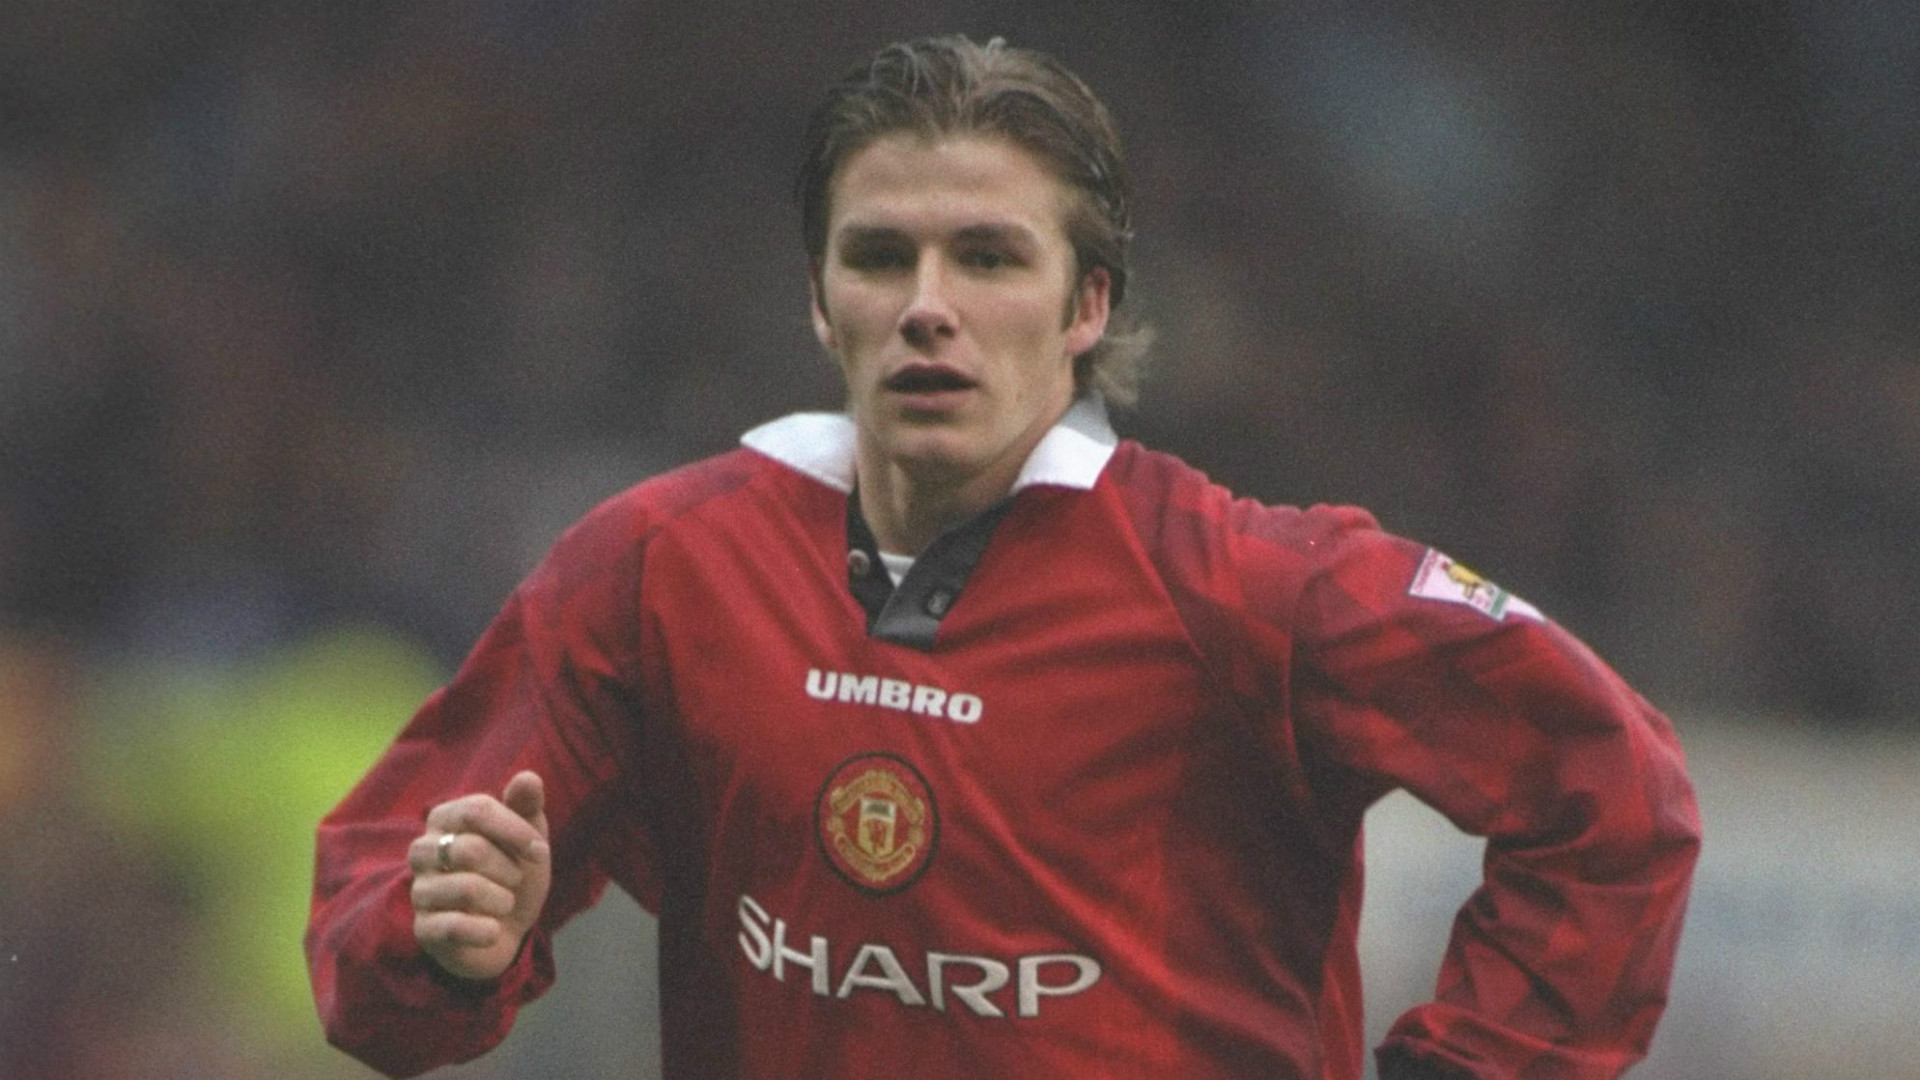 David Beckham: Manchester United Humiliated Me, But There